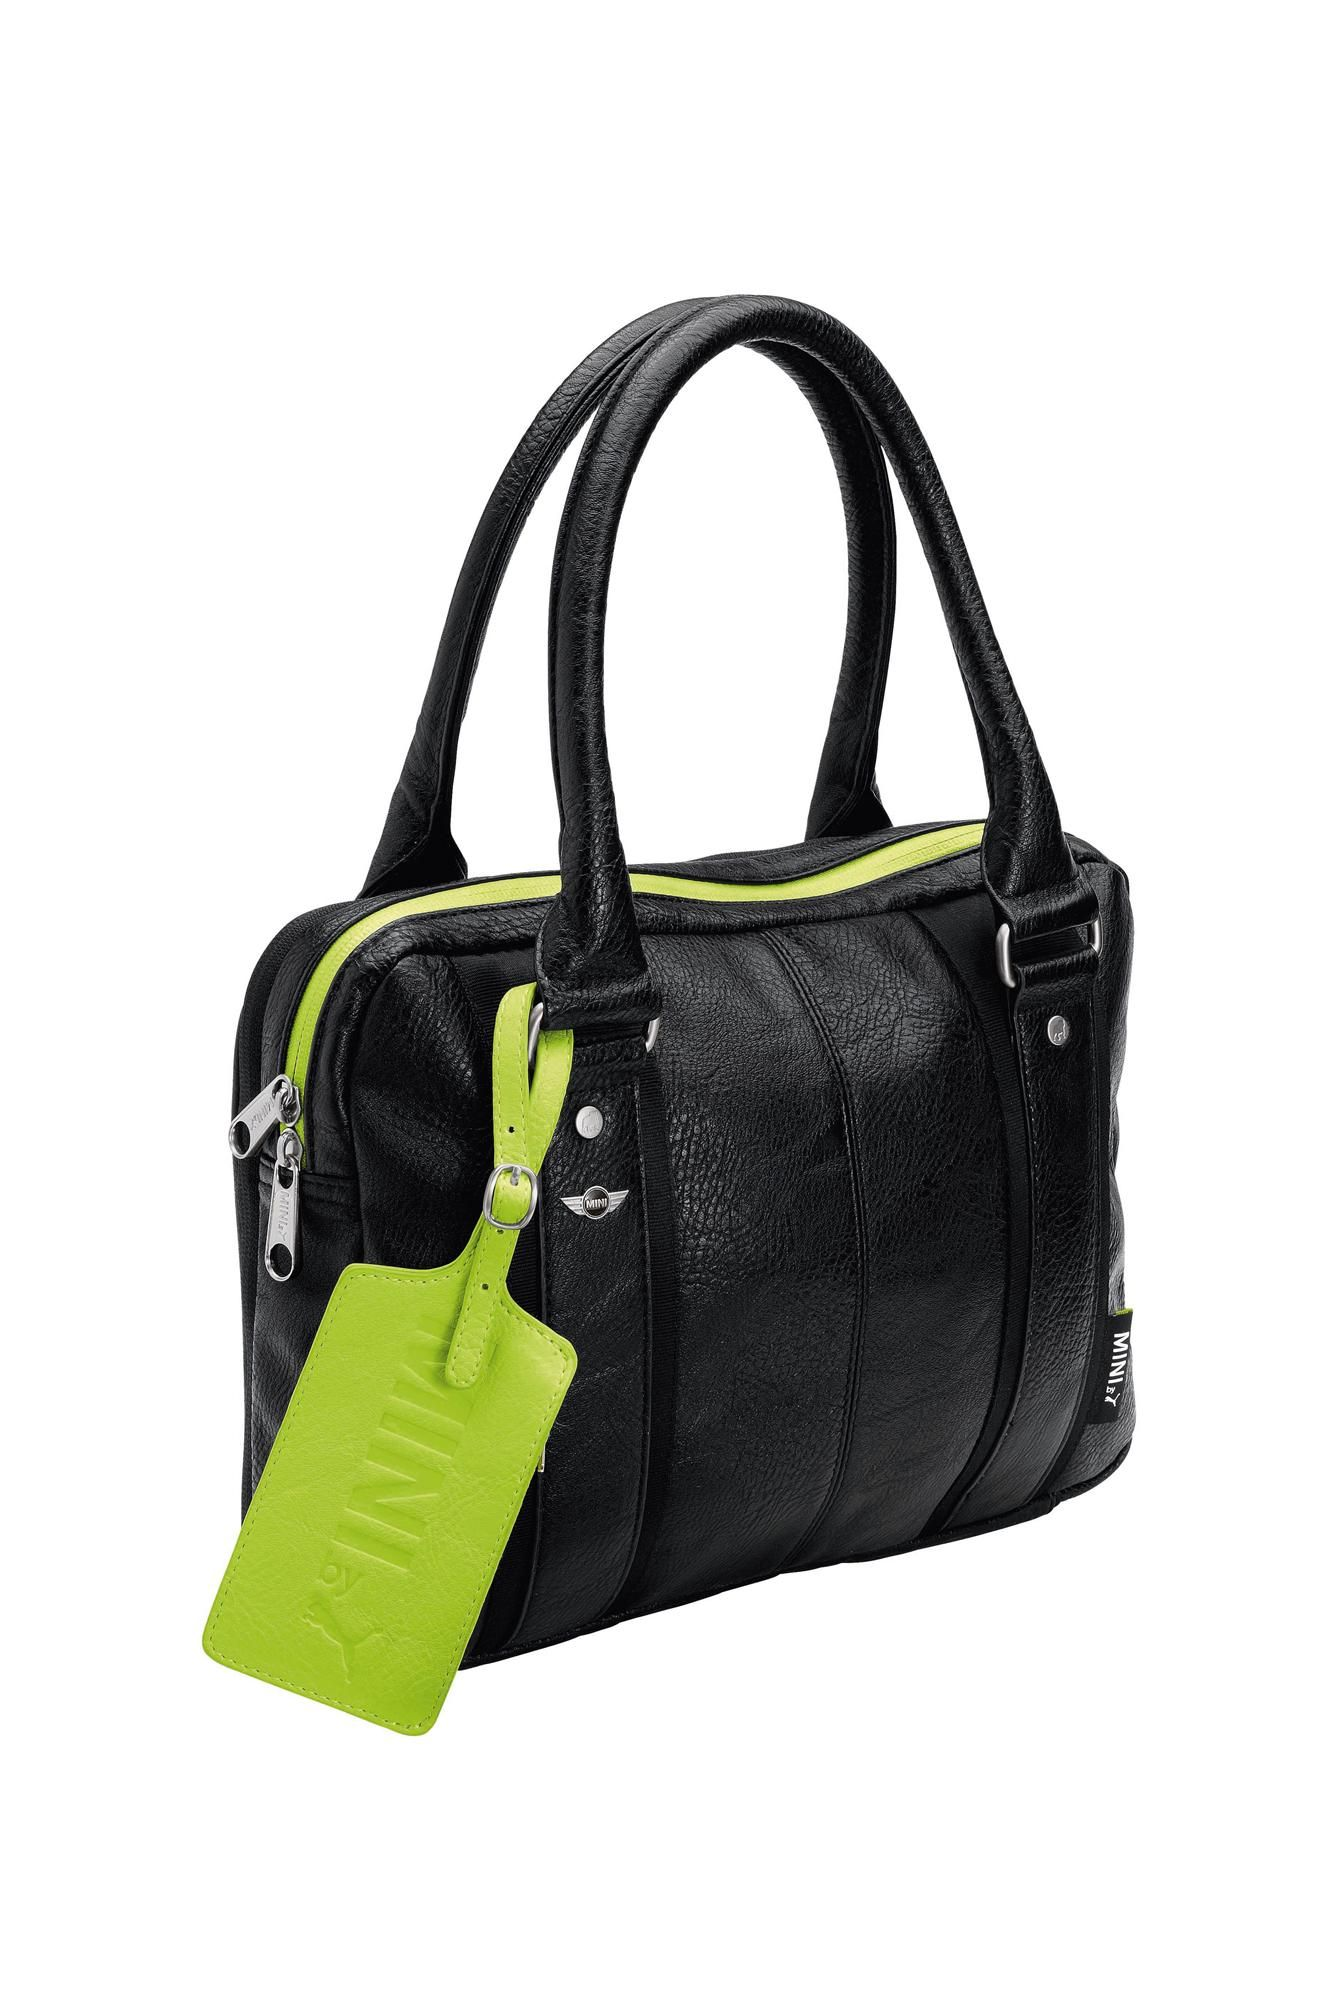 81ee79356f Mini by Puma: Black leather. #Bag #MIni #Puma | Style. | Urban bags ...